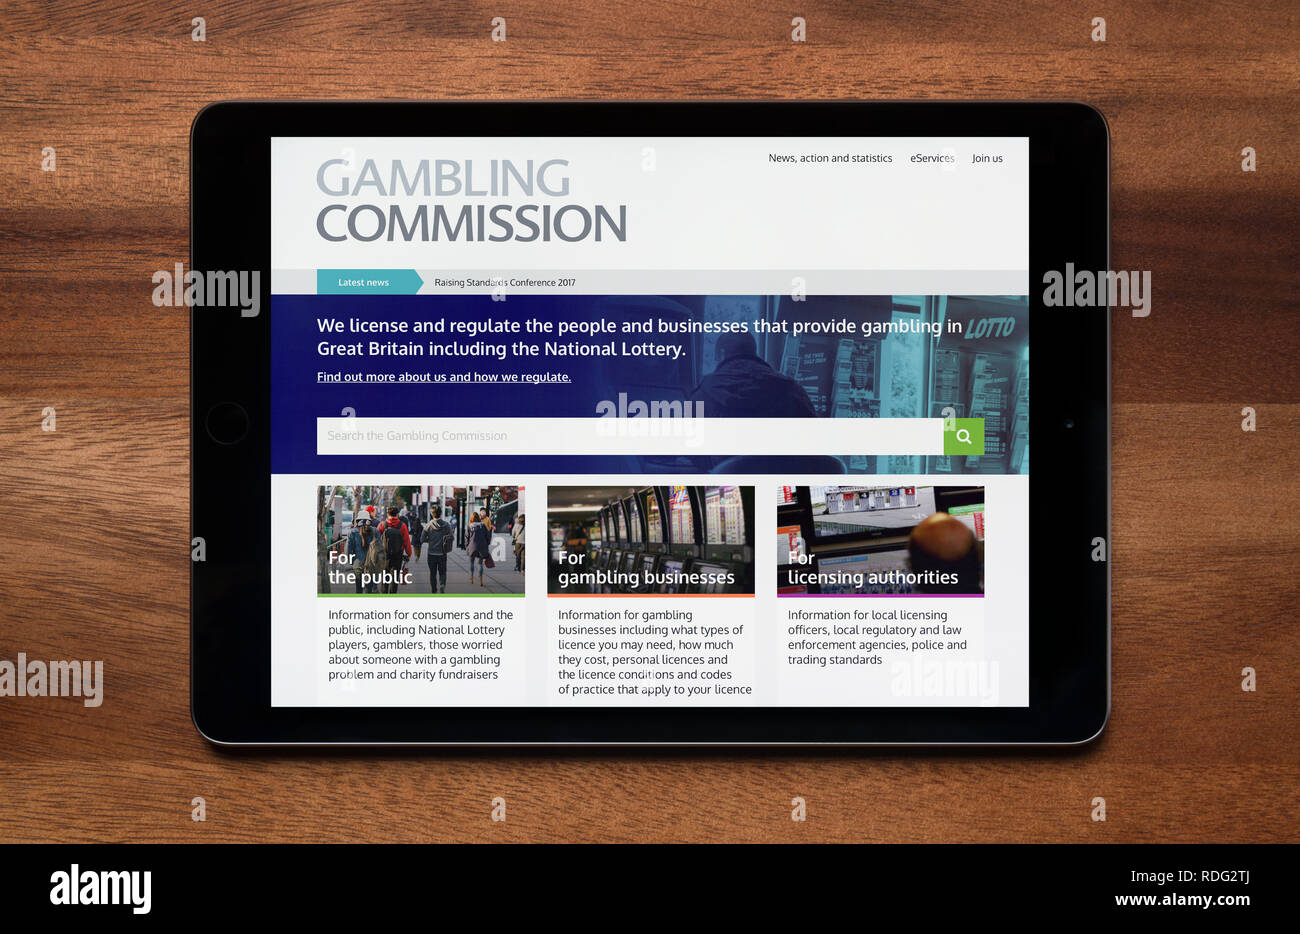 The website of Gambling Commission is seen on an iPad tablet, which is resting on a wooden table (Editorial use only). - Stock Image